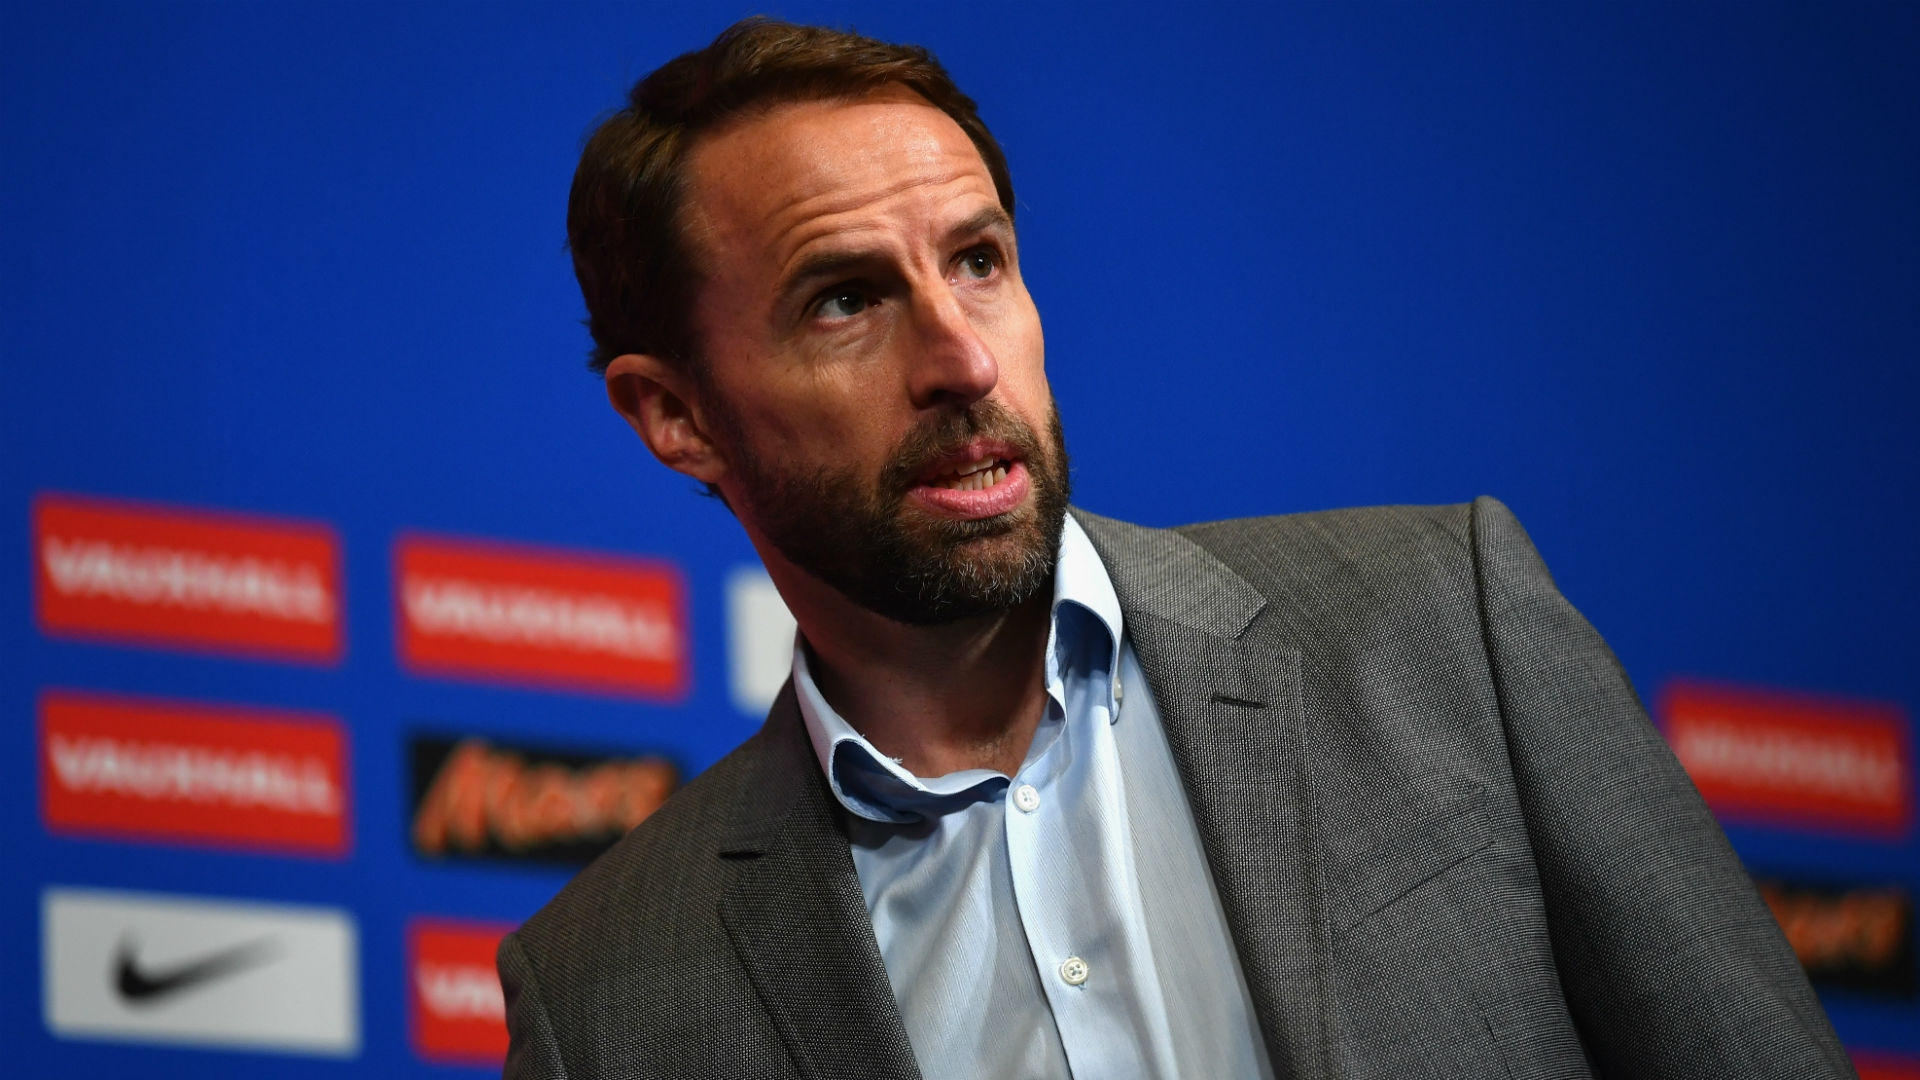 G. Southgate - England's manager for the 2018 World Cup